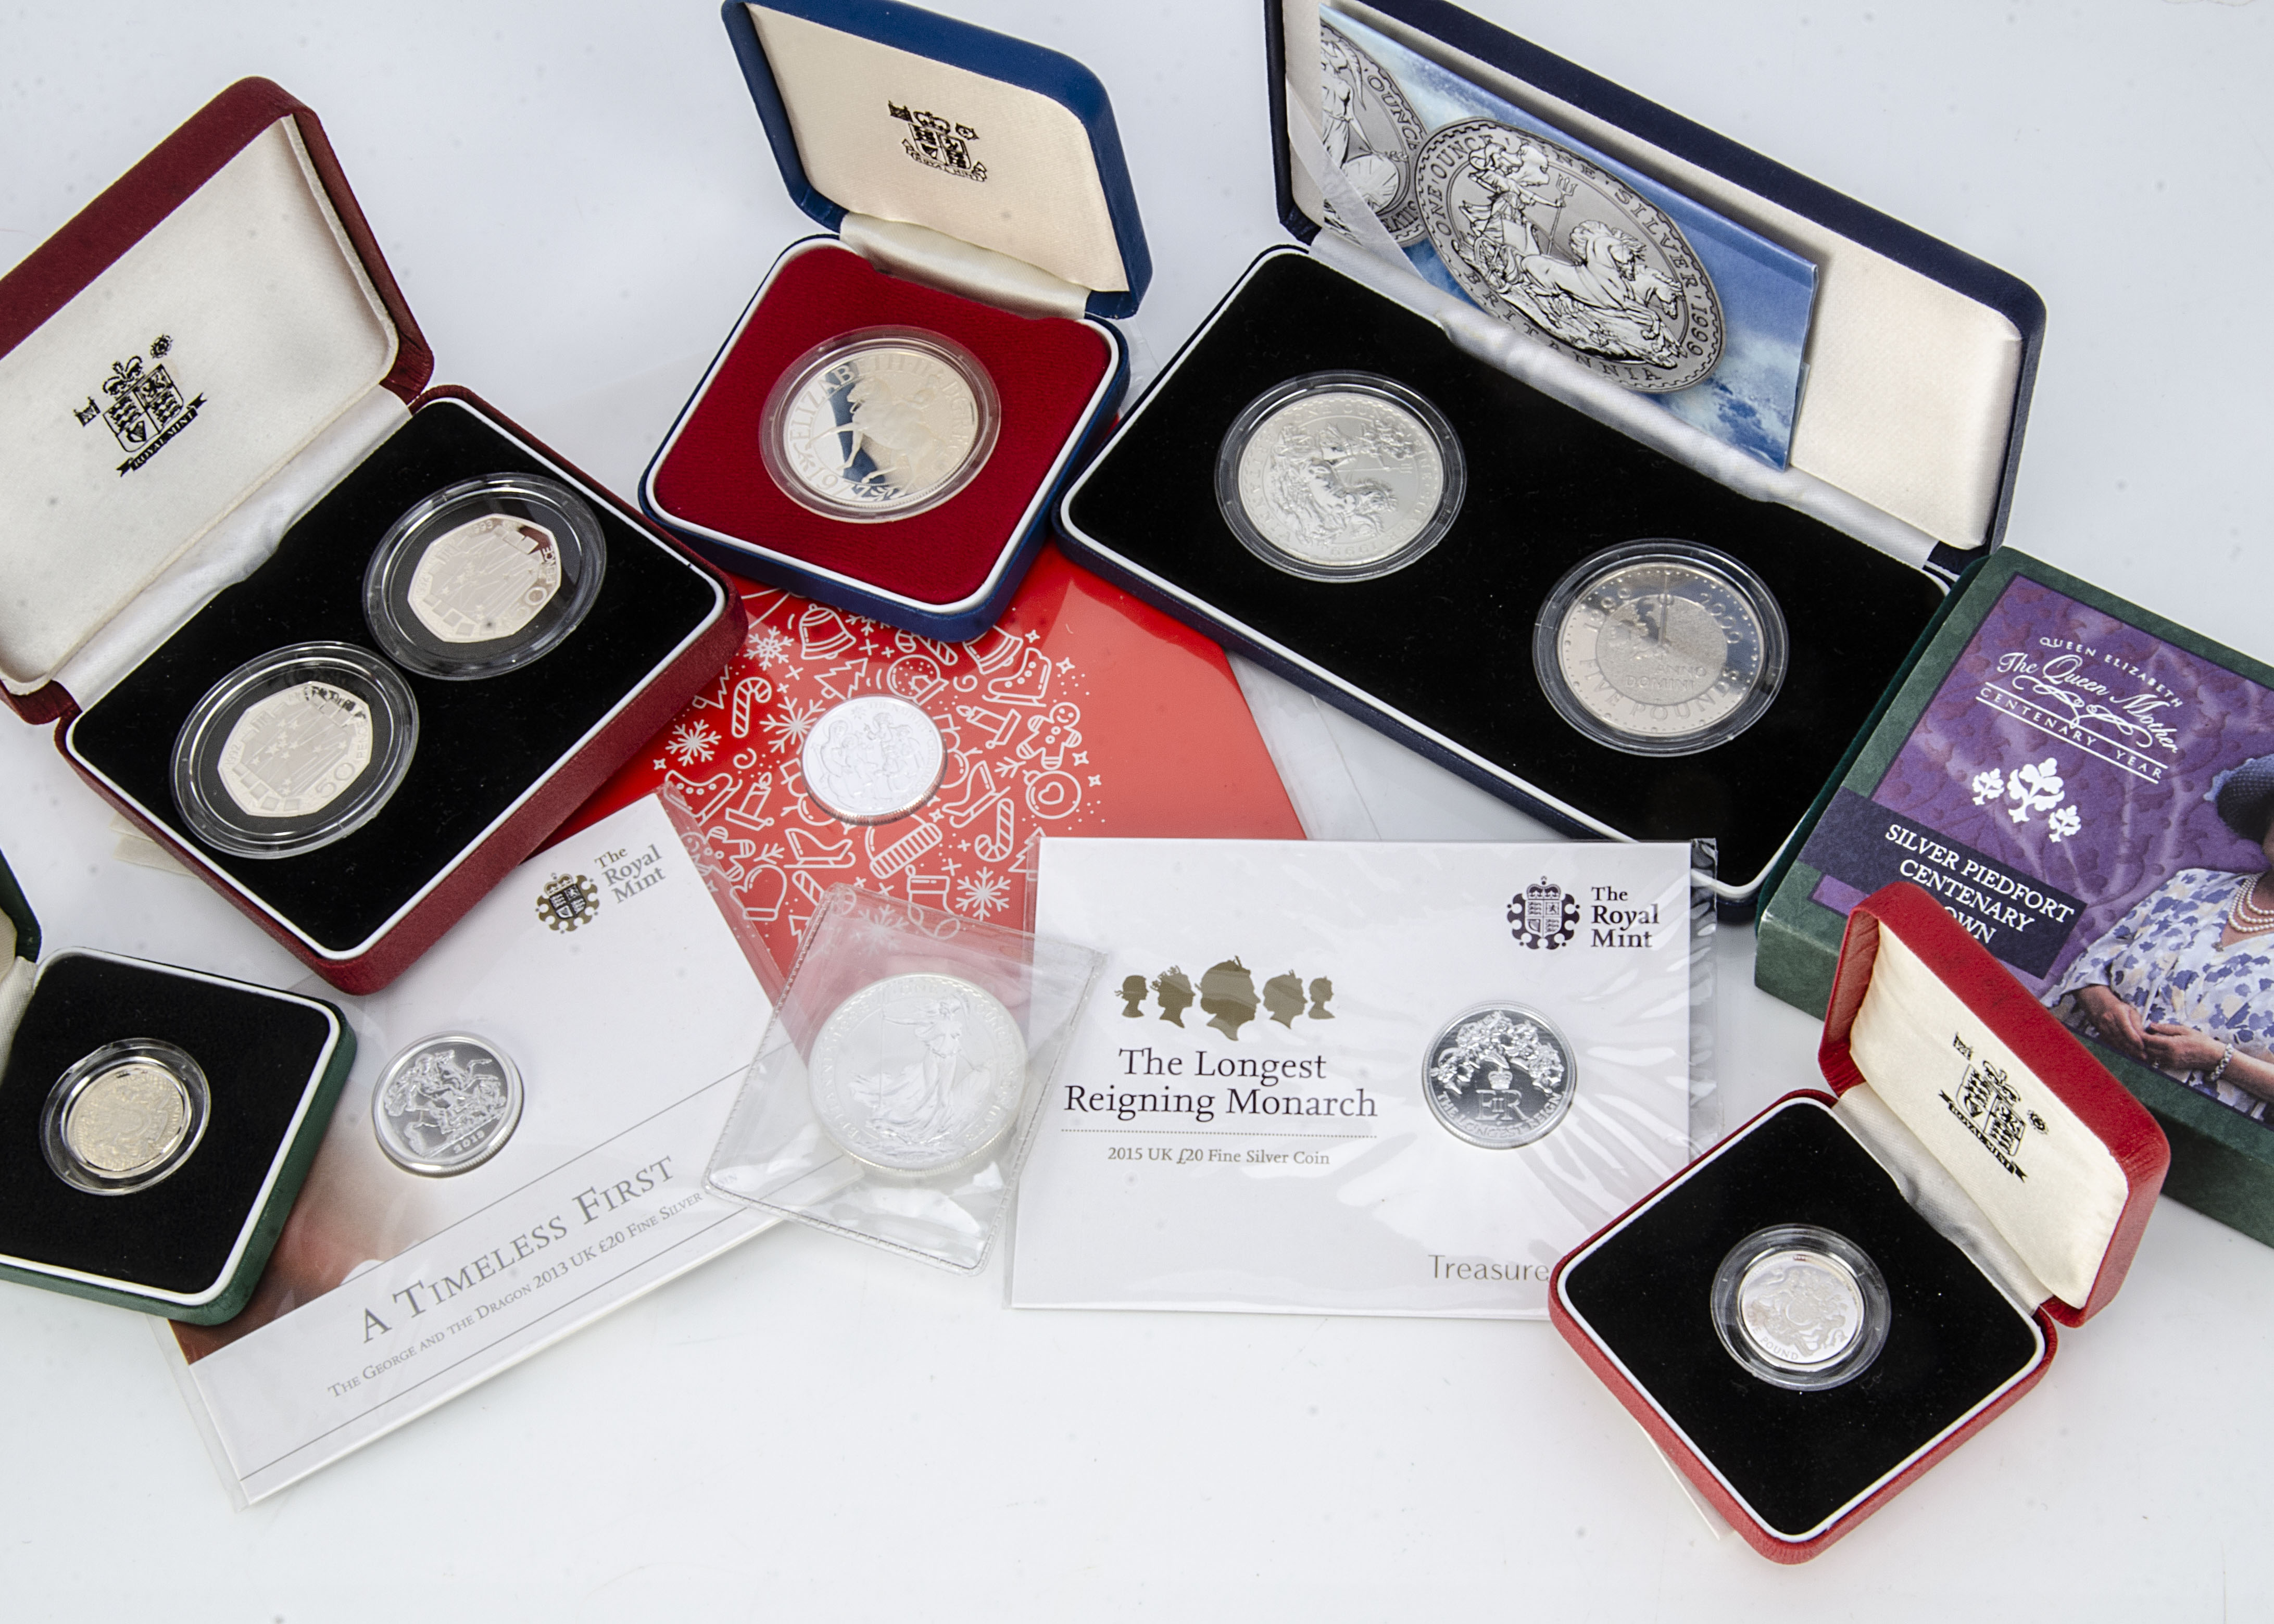 Eleven modern Royal Mint silver proof and silver coins, including a 1977 crown in box, a Queen